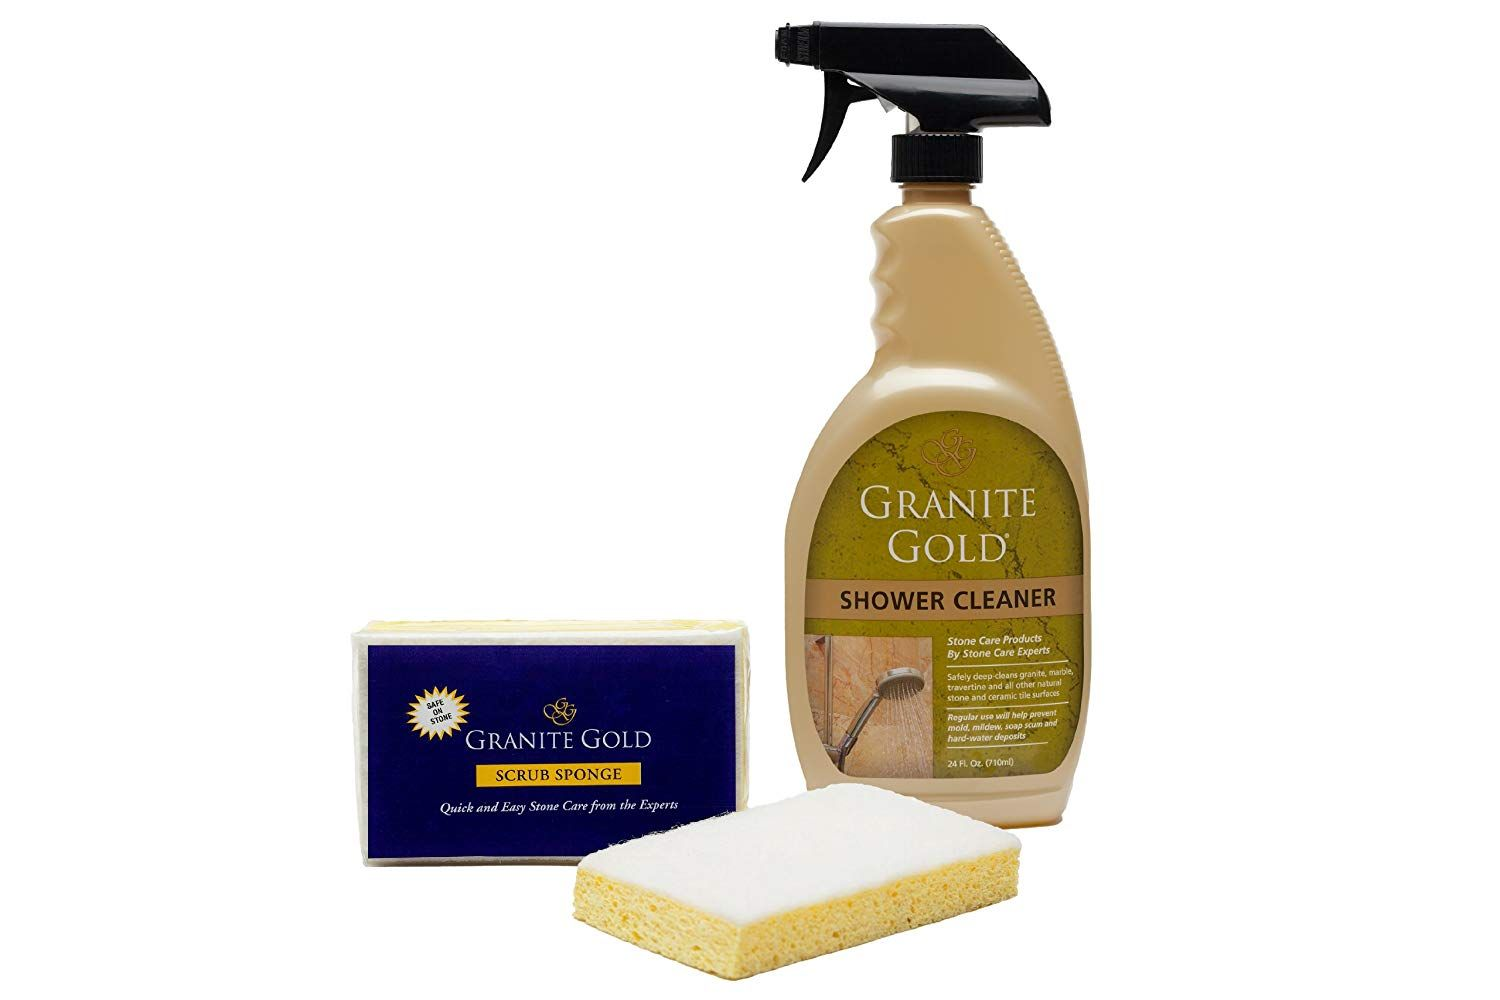 Pin By Brenda Wilson On Shower Cleaner Ideas Best Shower Cleaner Shower Cleaner How To Clean Granite